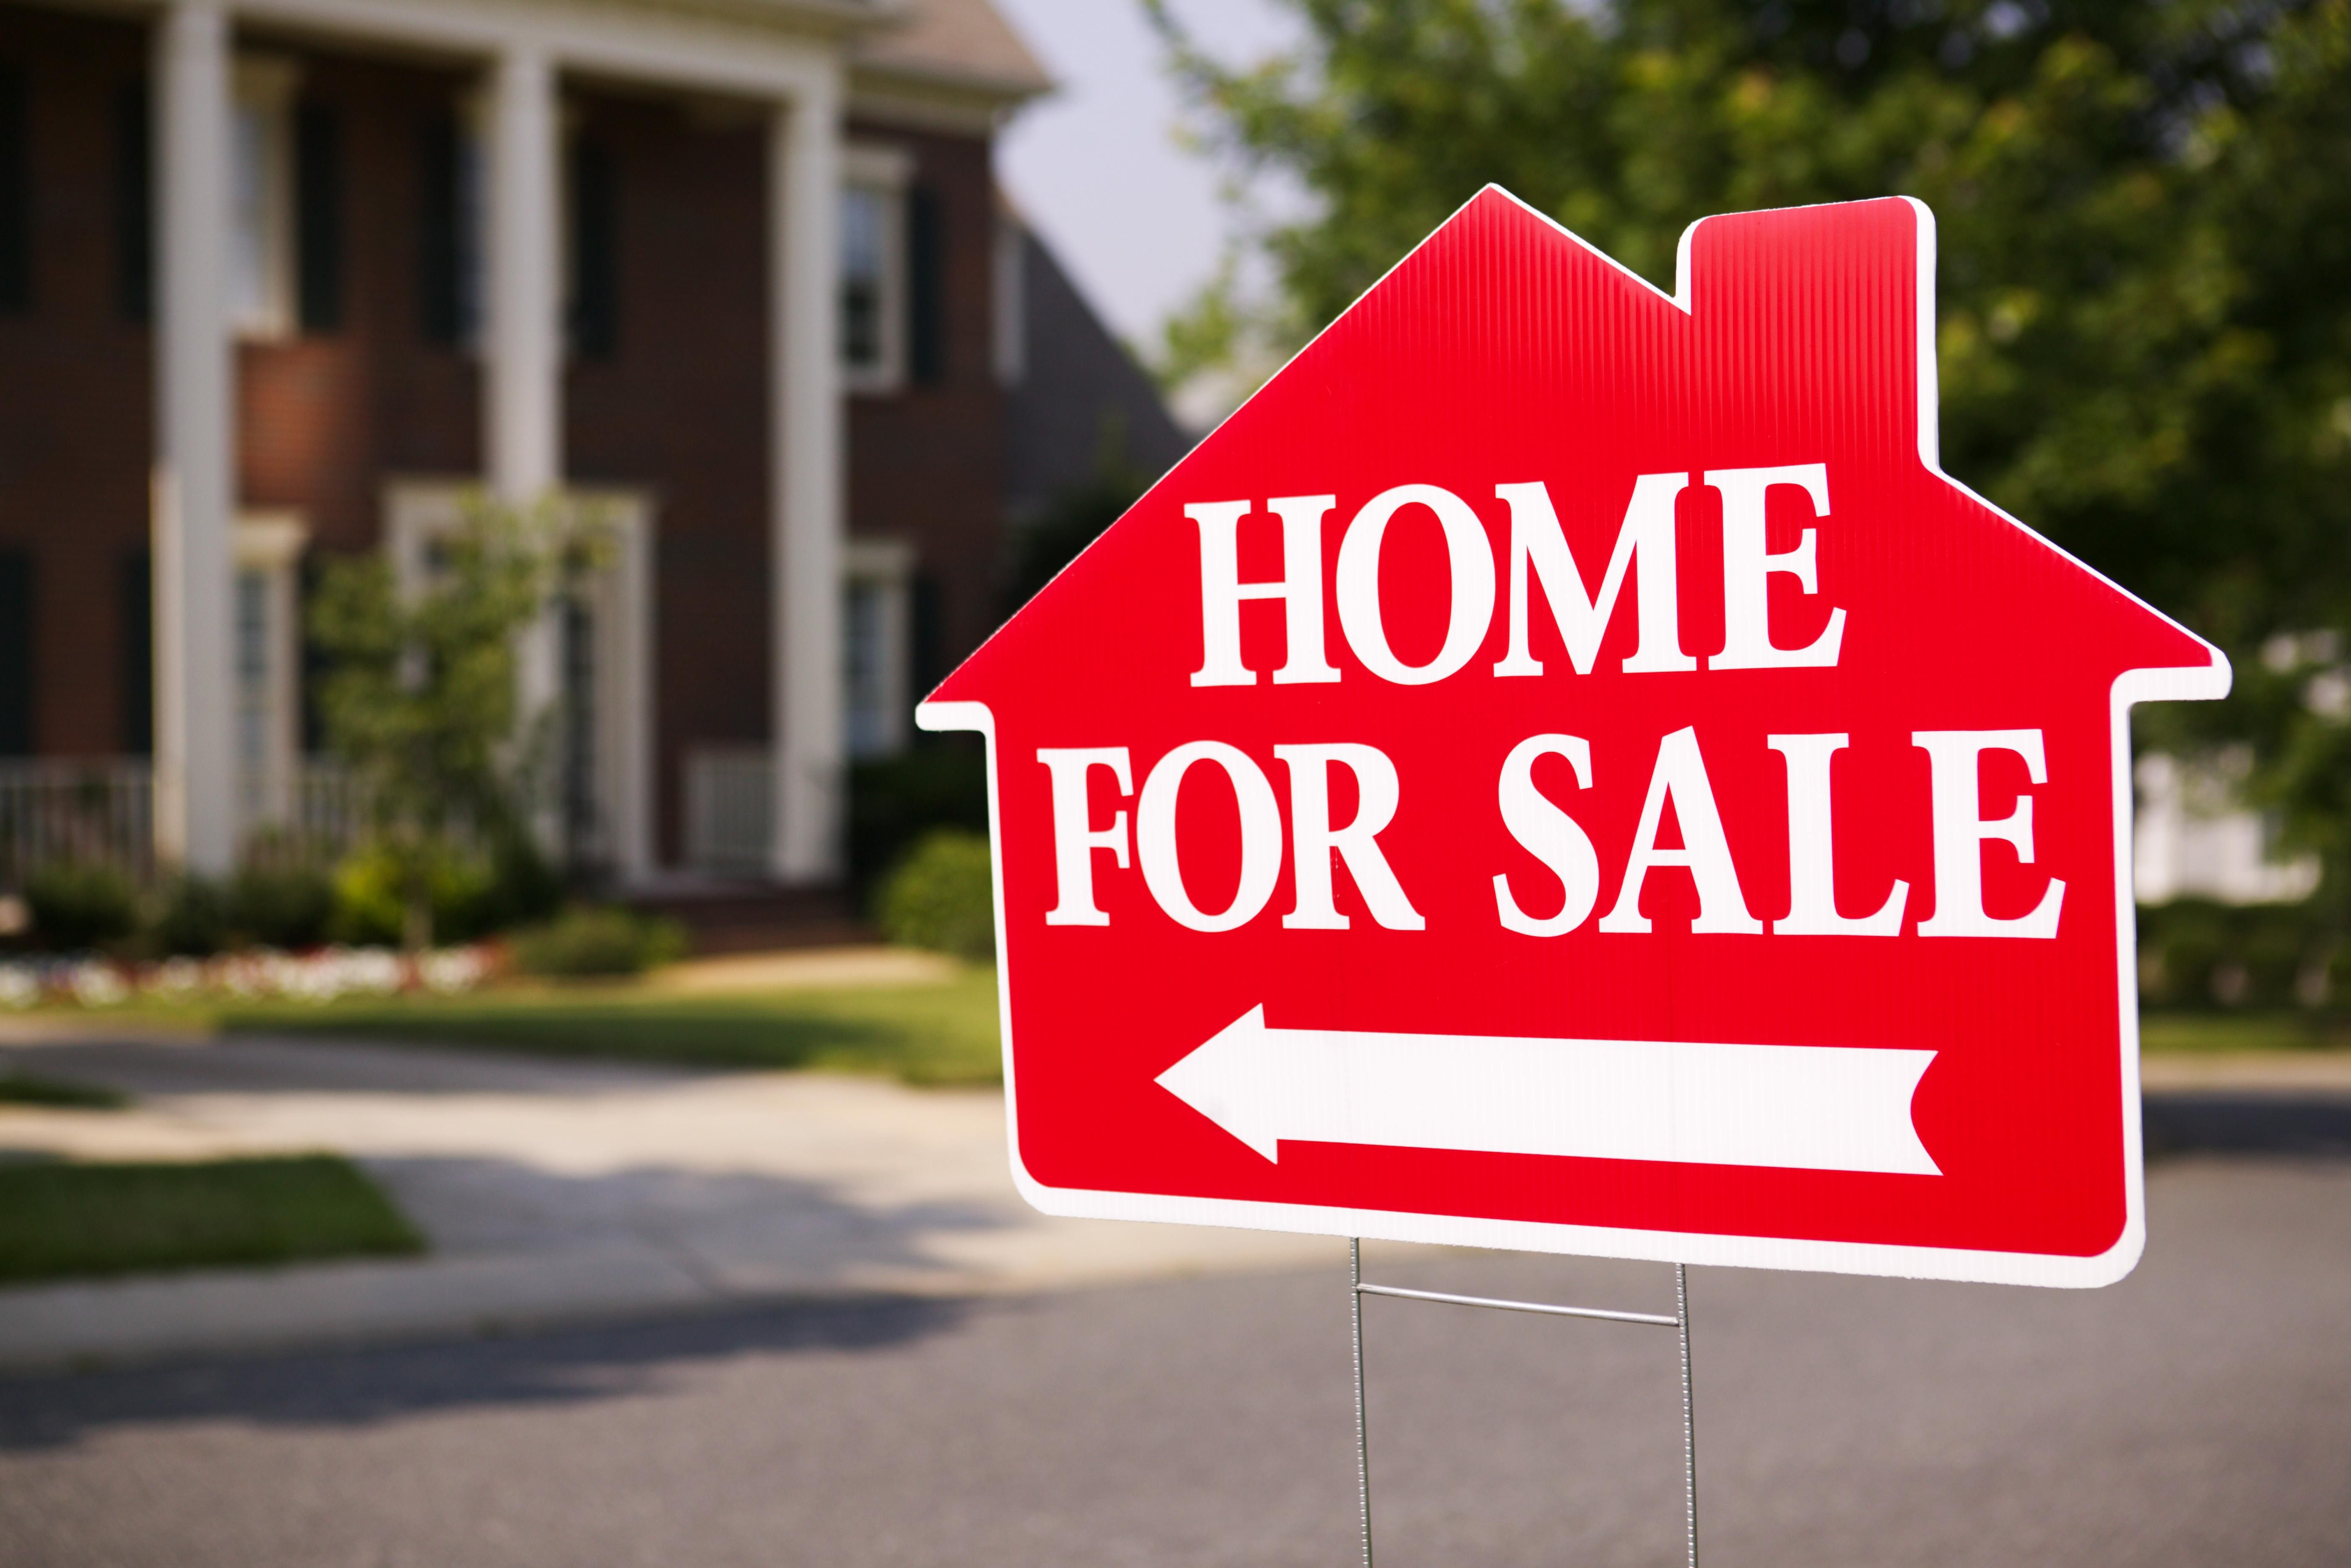 How to start flipping houses with bad credit - Close Up Of A Sign Pointing To A Home For Sale In Suburbia